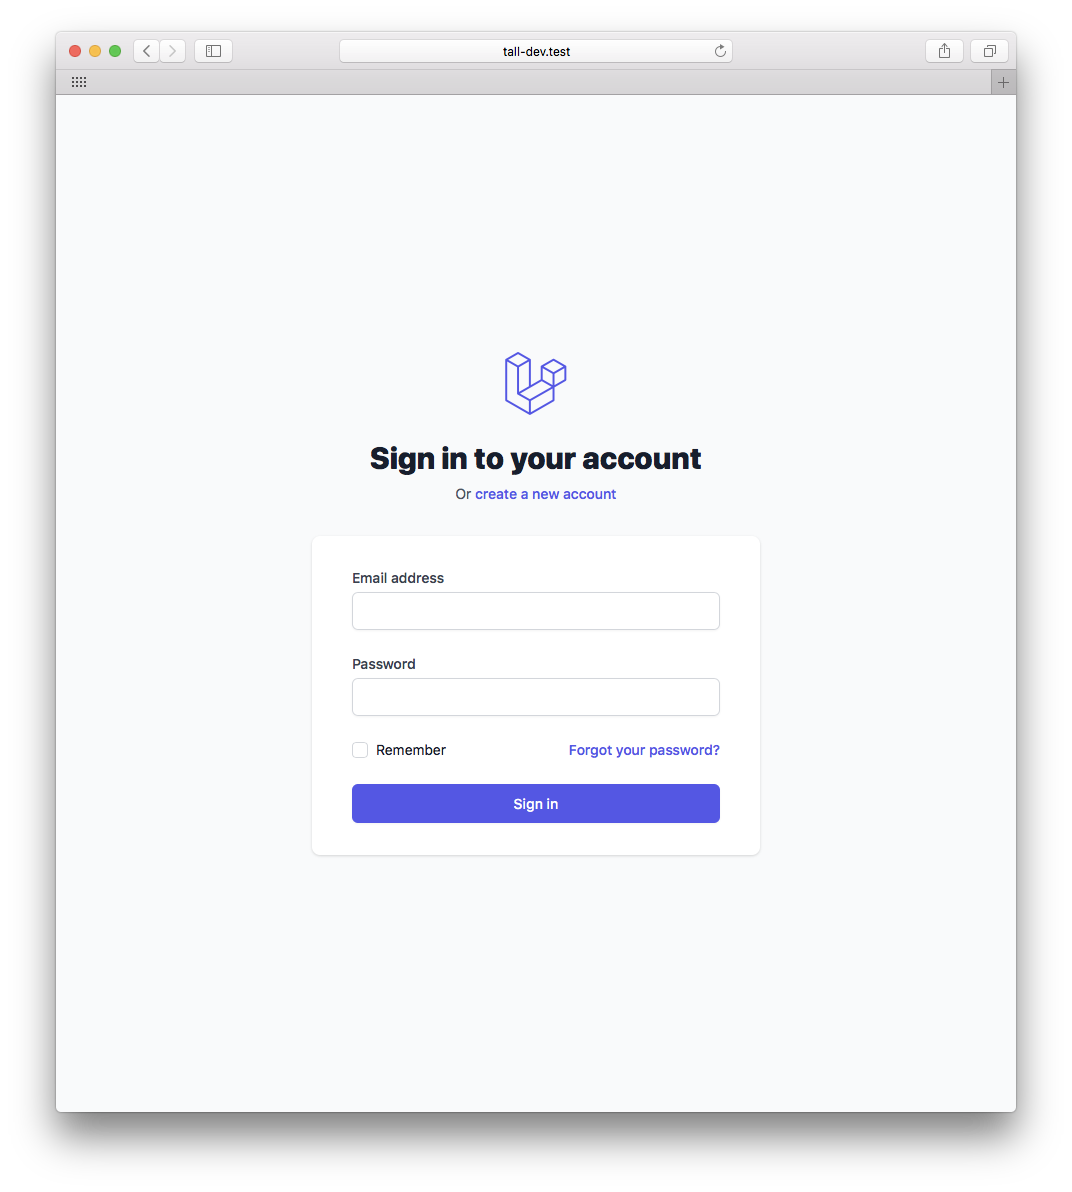 TALL preset sign-in page